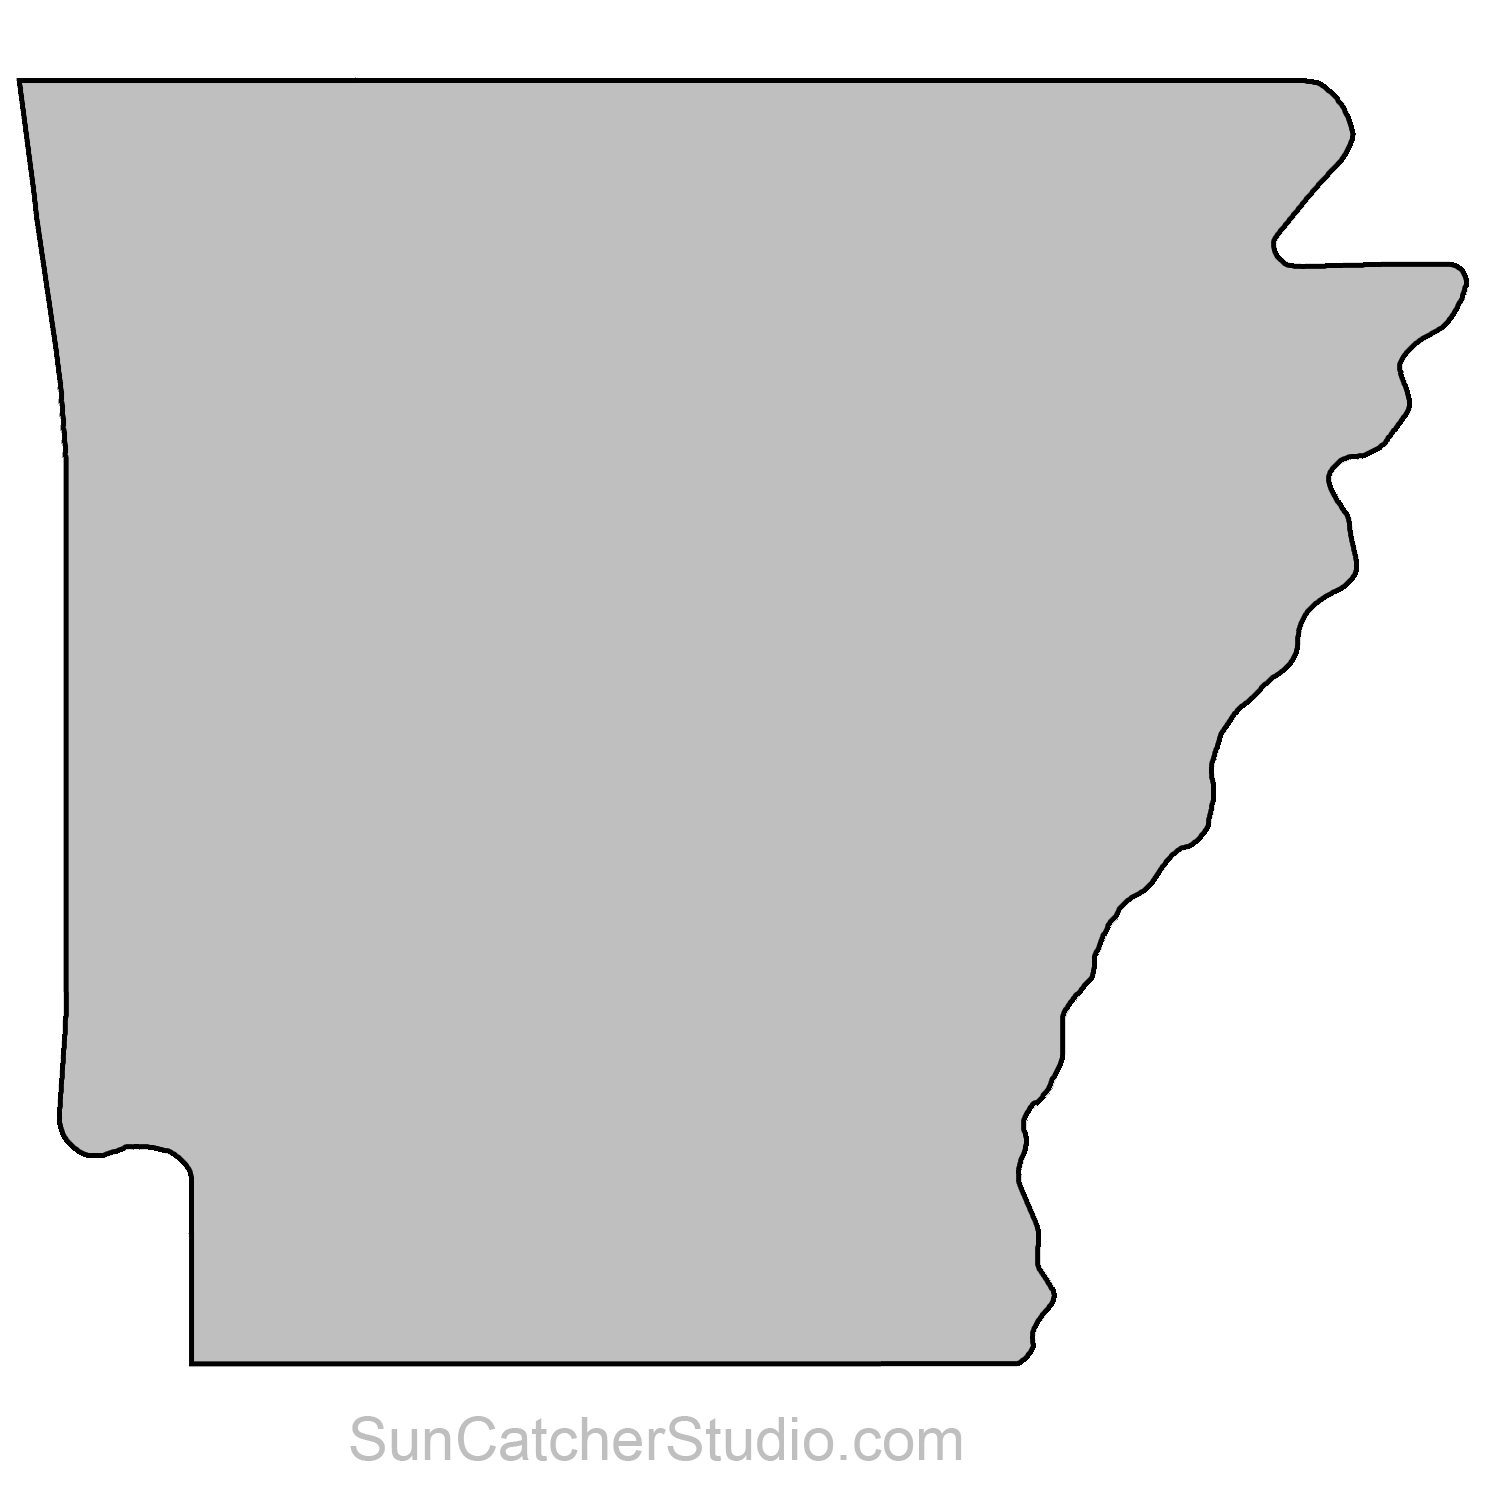 Arkansas svg shape. Outline pattern png pixels